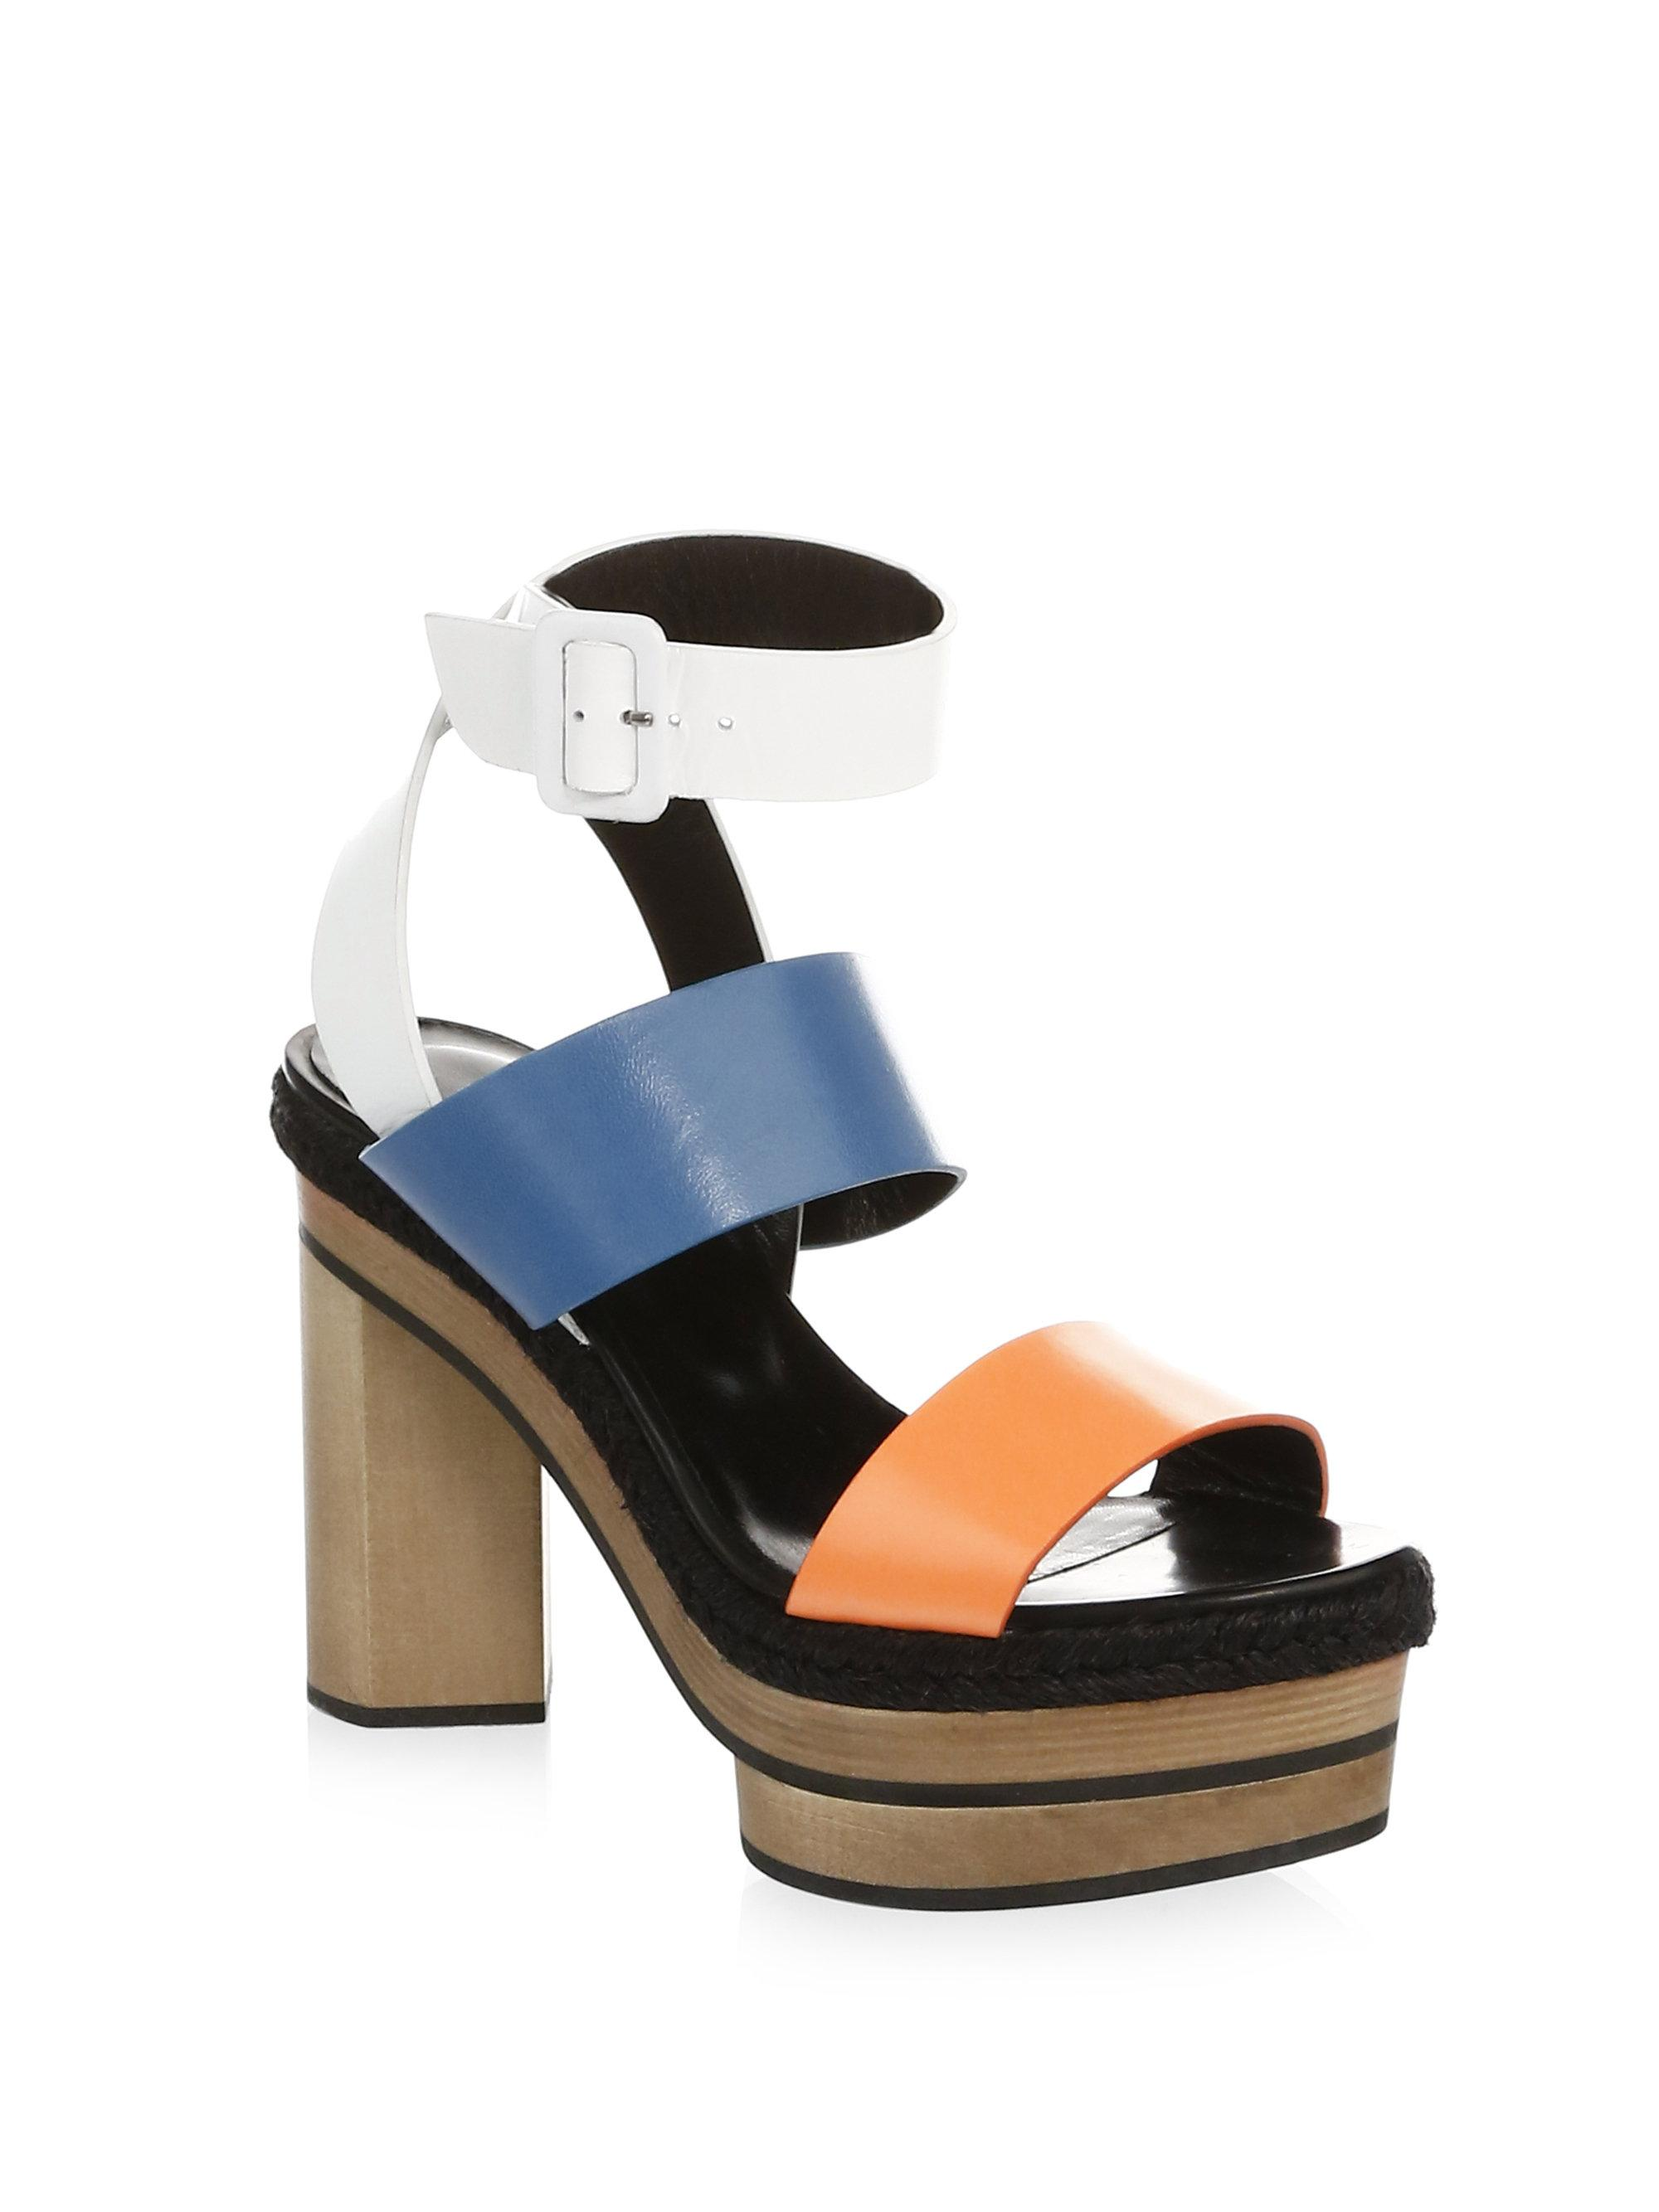 Pierre Hardy multi strap sandals outlet best place nicekicks cheap price pictures cheap price outlet cheapest price SCkRnV